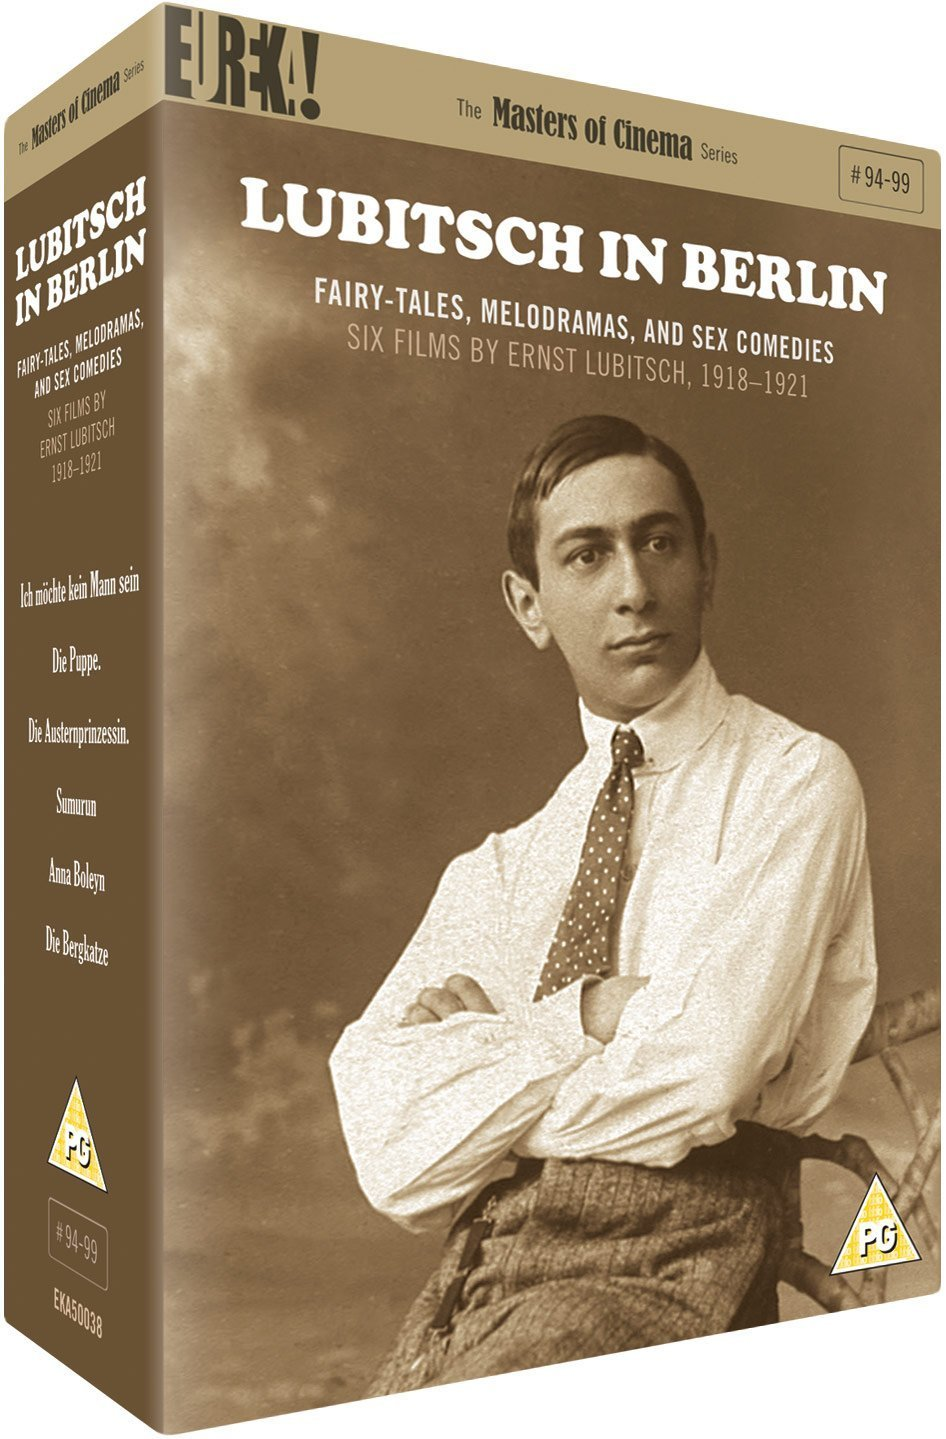 Lubitsch in Berlin 1918-1921 (Masters of Cinema/Eureka) DVD box set